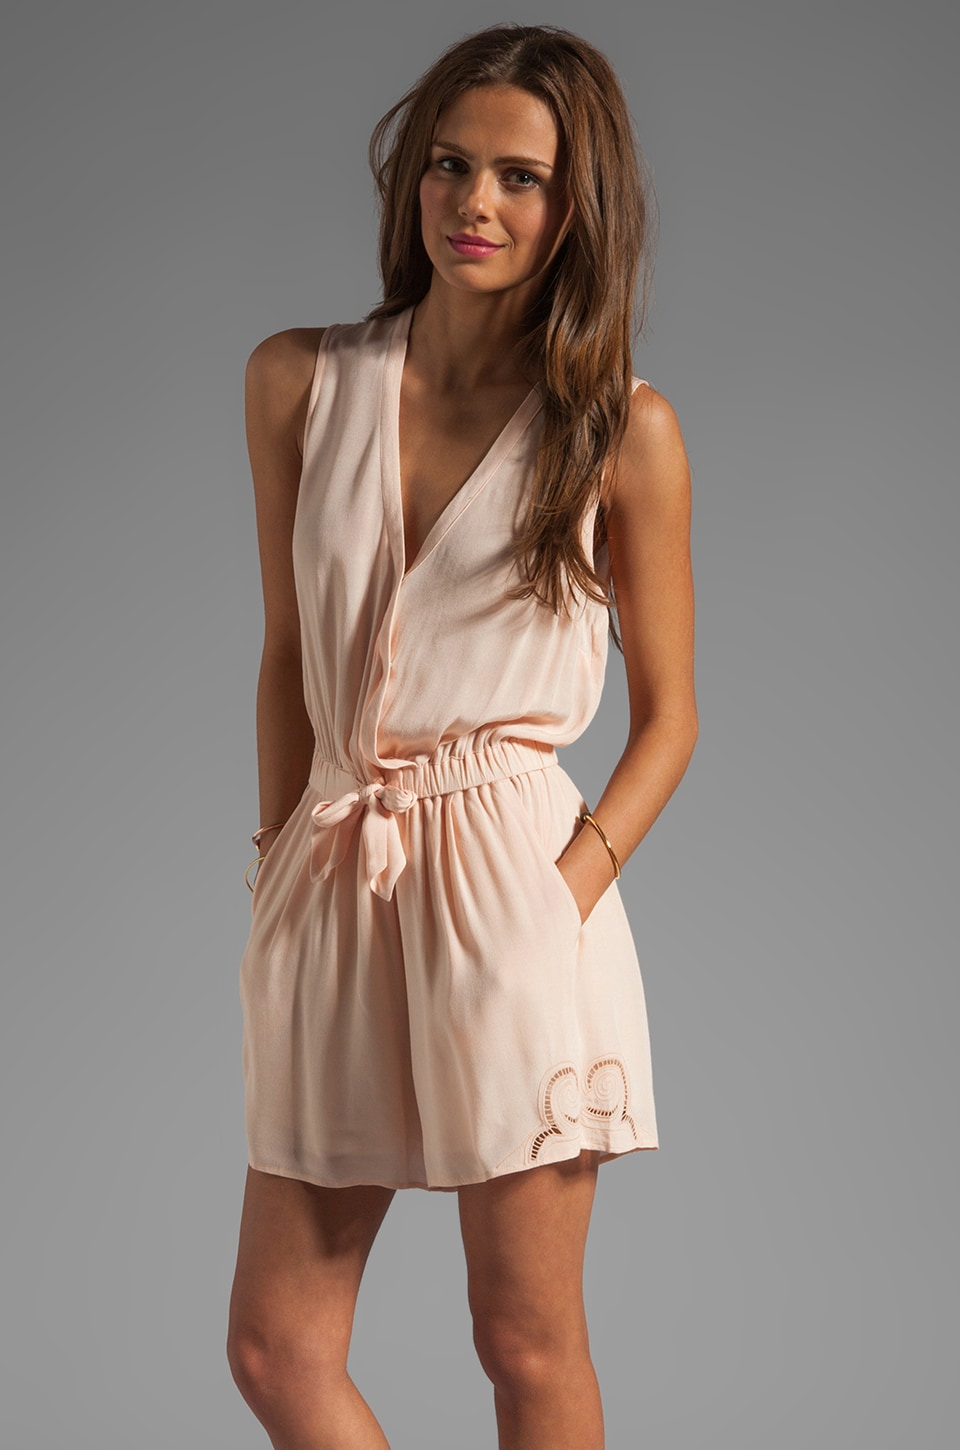 Wish Trinket Playsuit in Nude